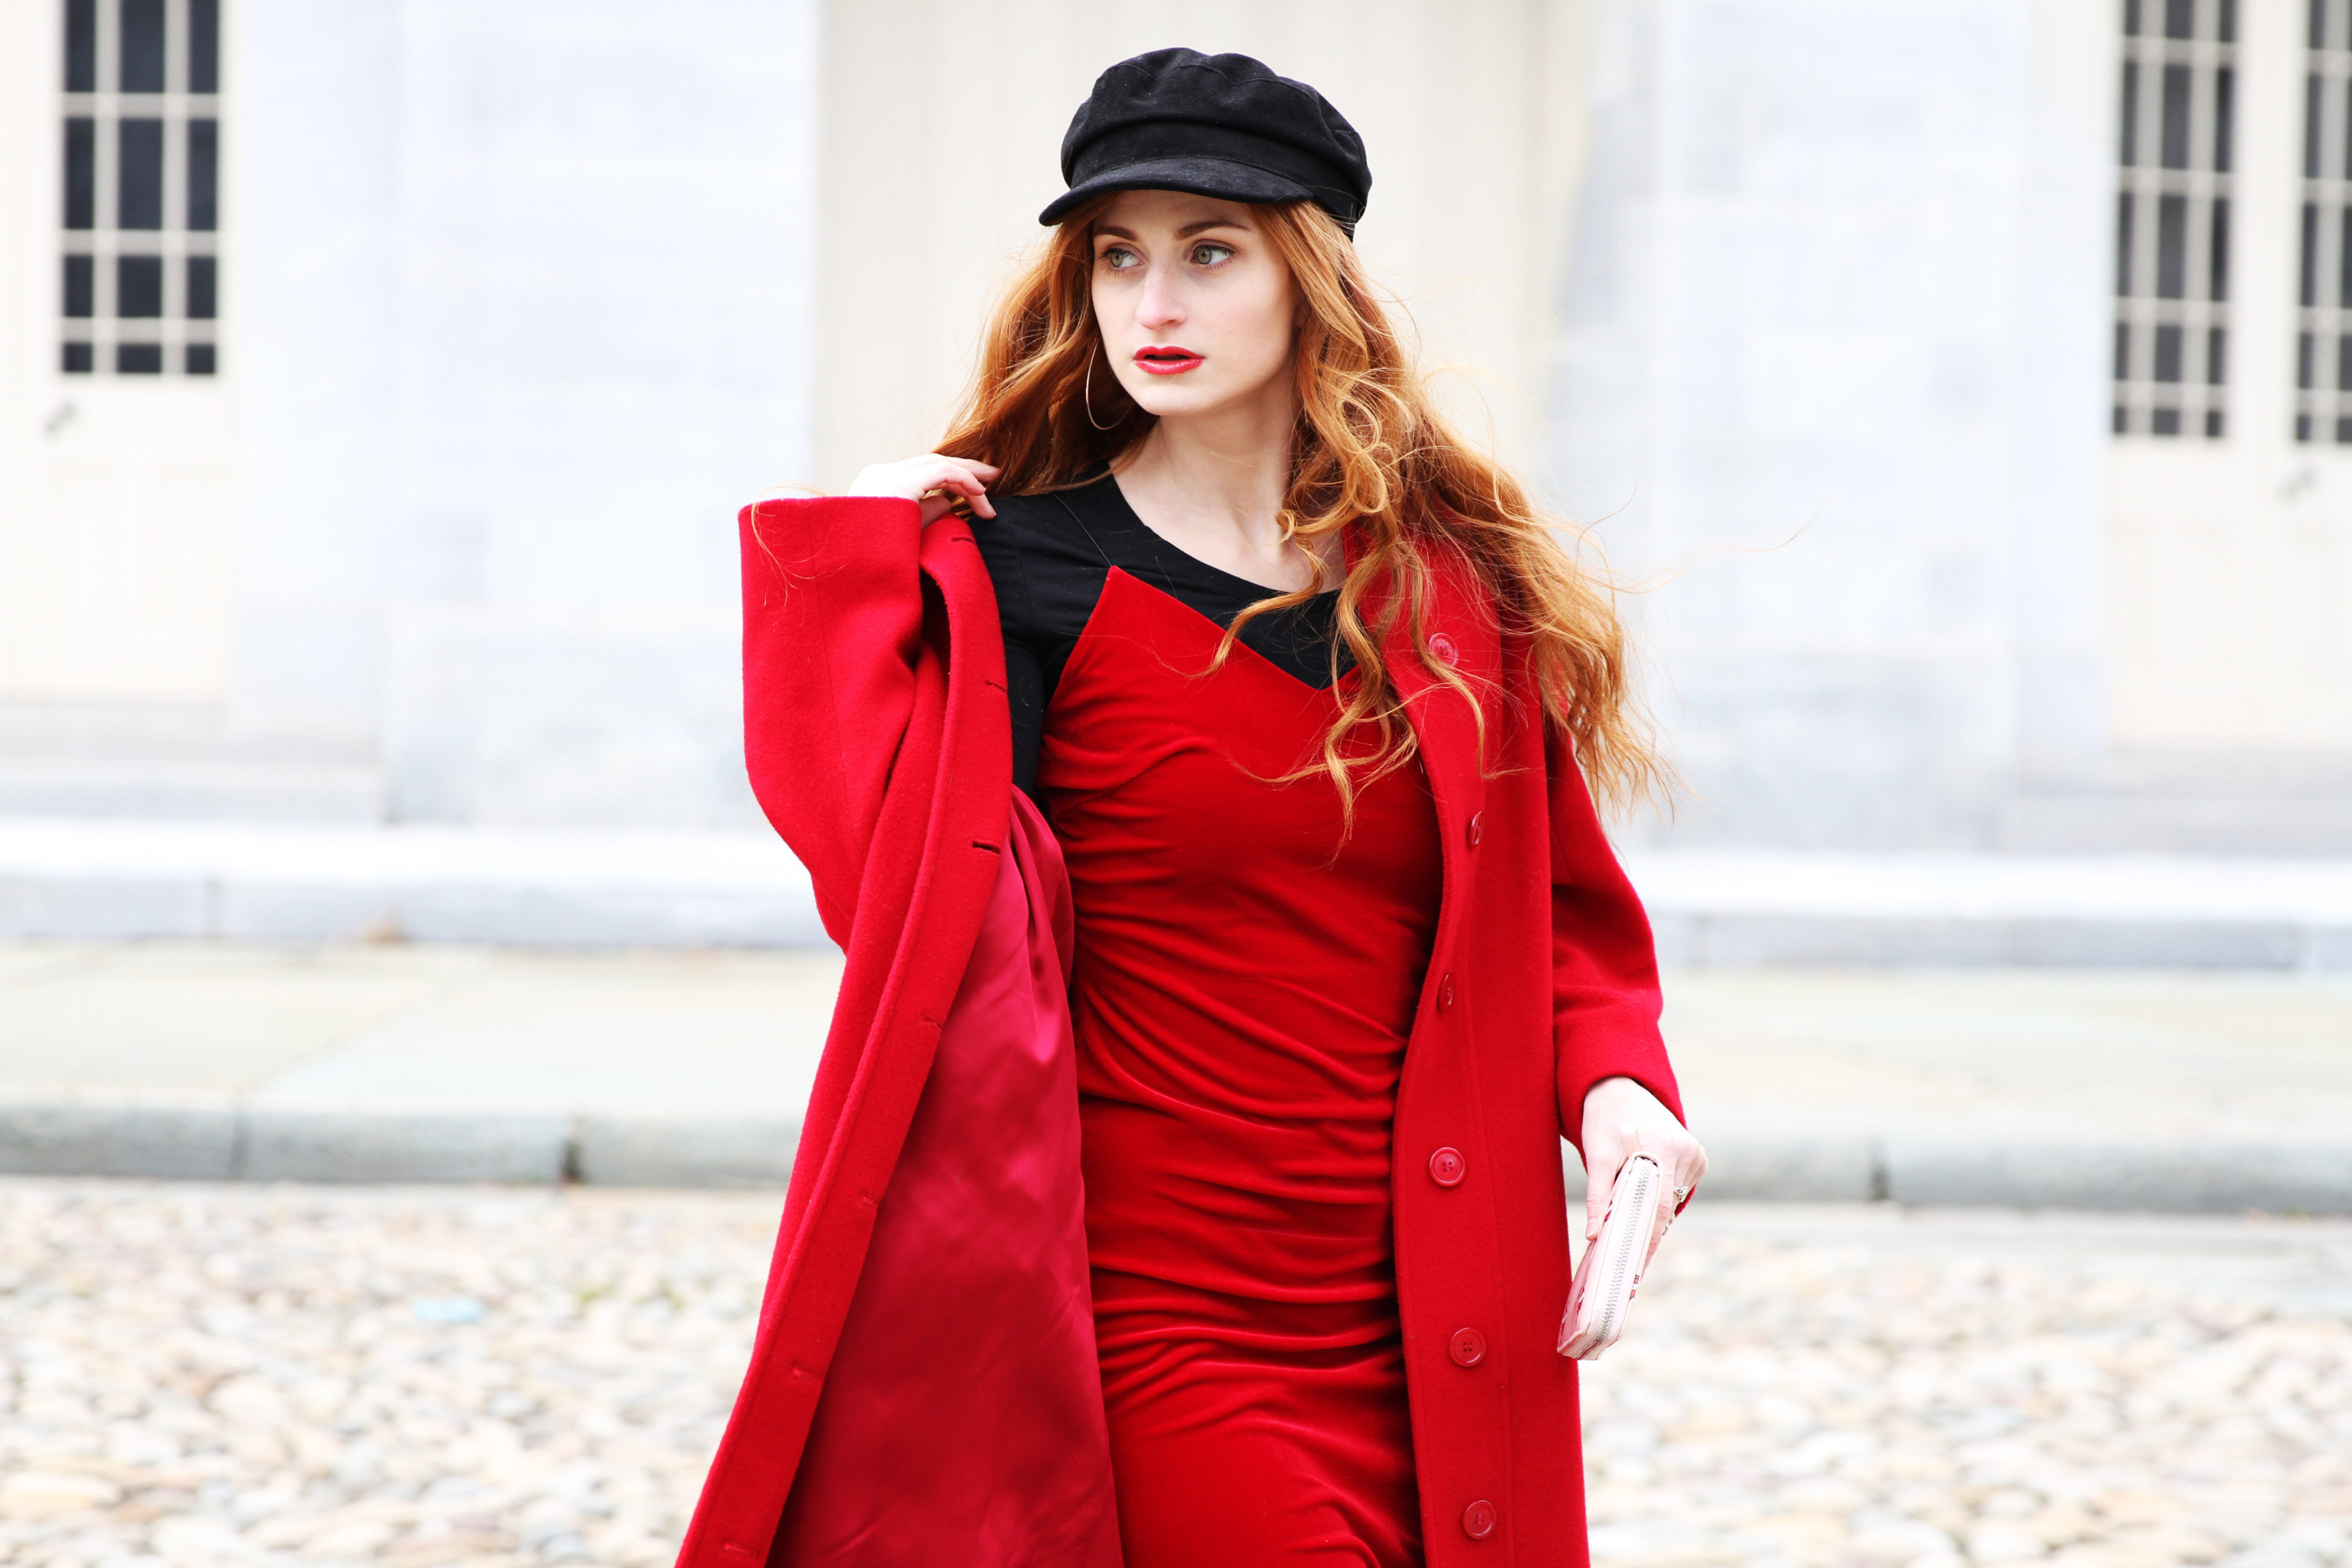 Erin Leigh, She's Red Haute wearing all red outfit